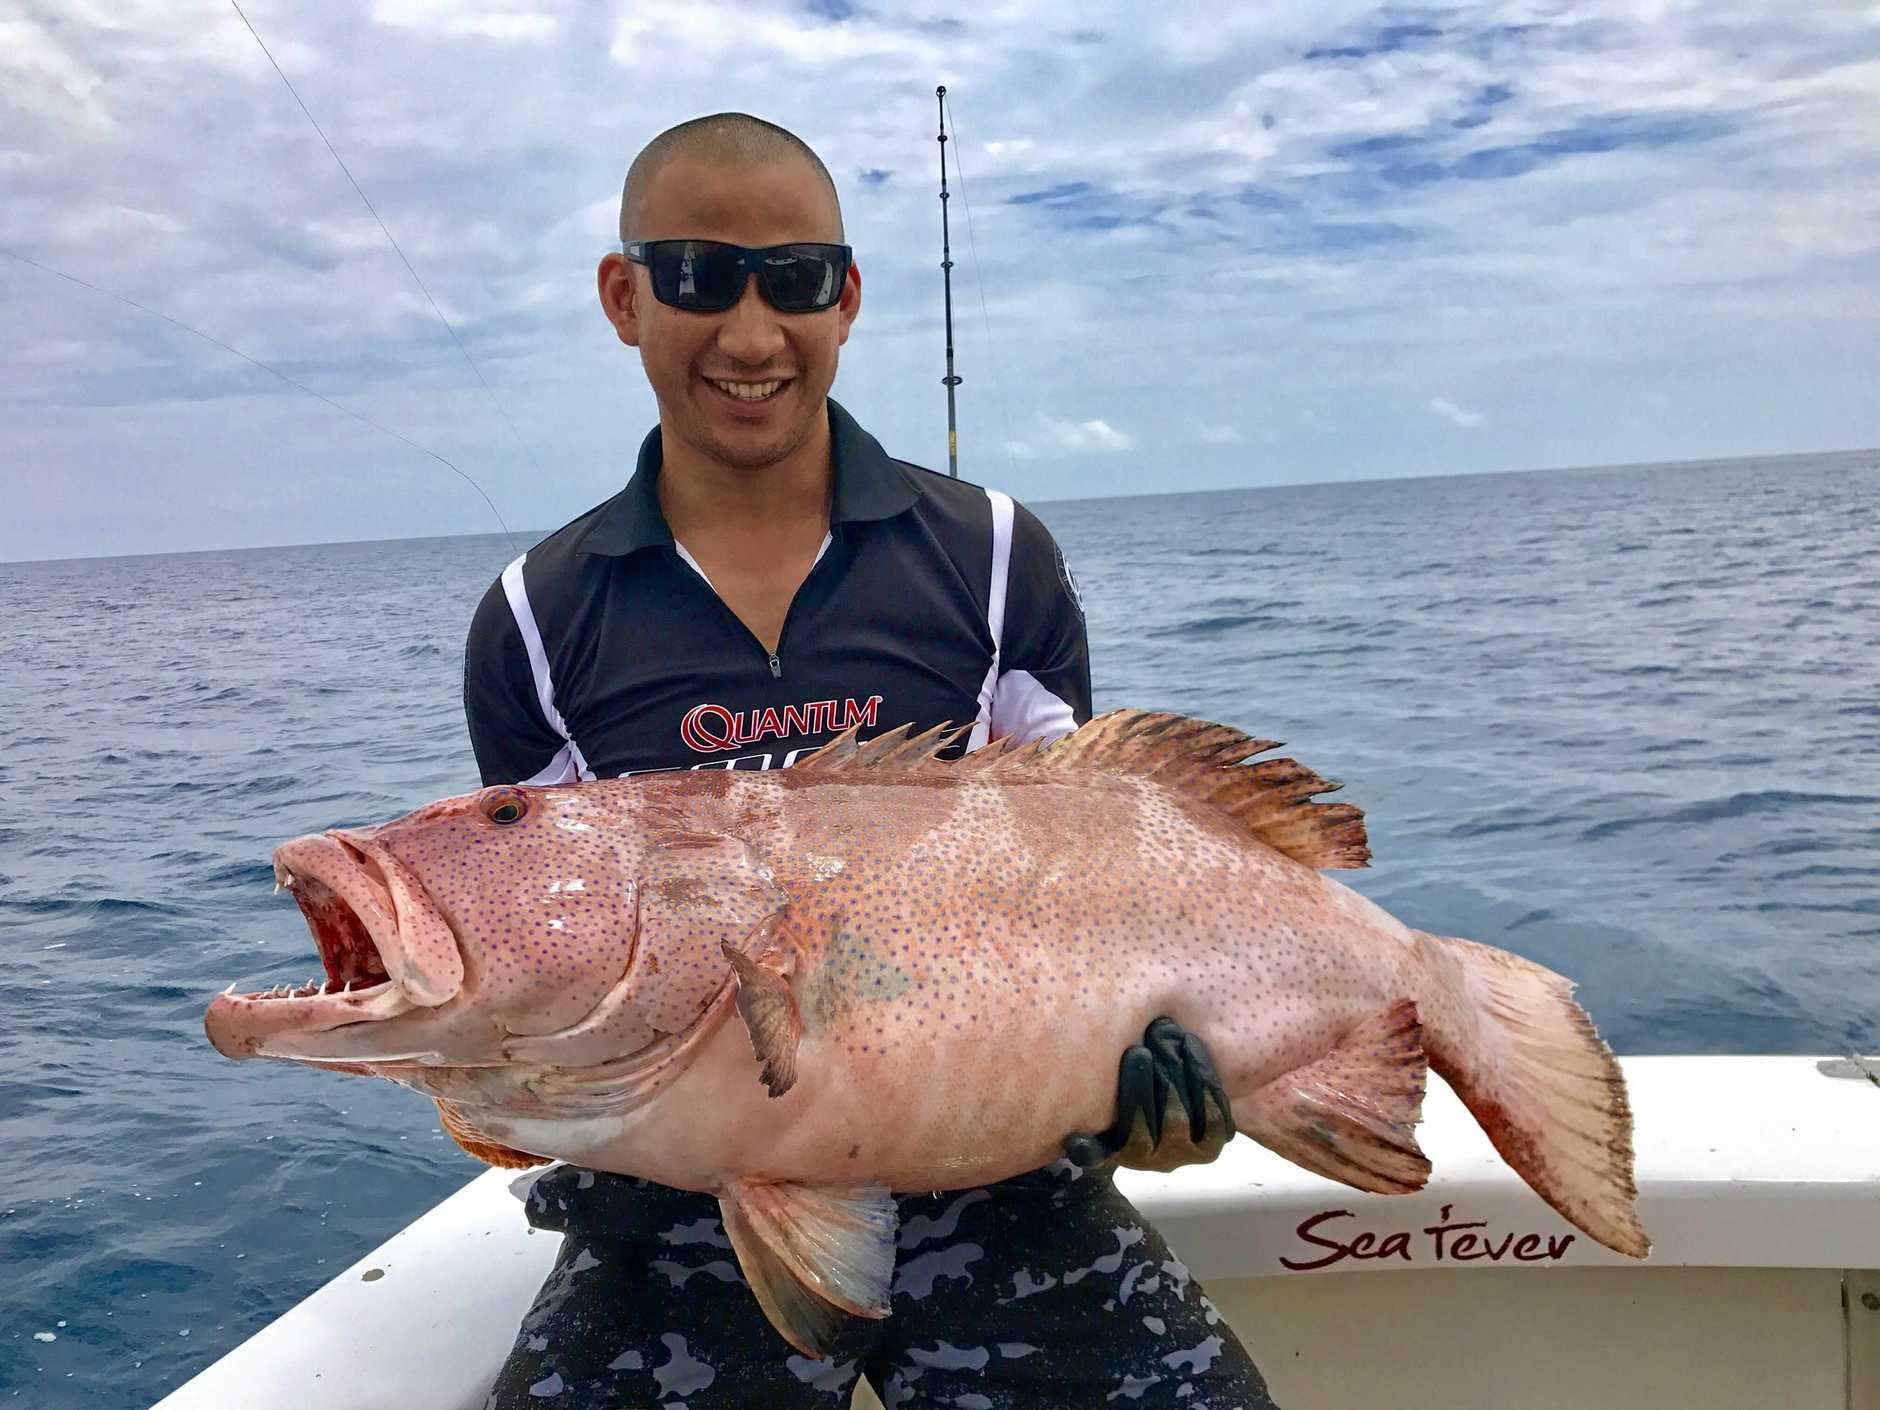 Anuk Hem from Adelaide caught and released this monster blue spot coral trout at the reef last week with Sea Fever Sportfishing.